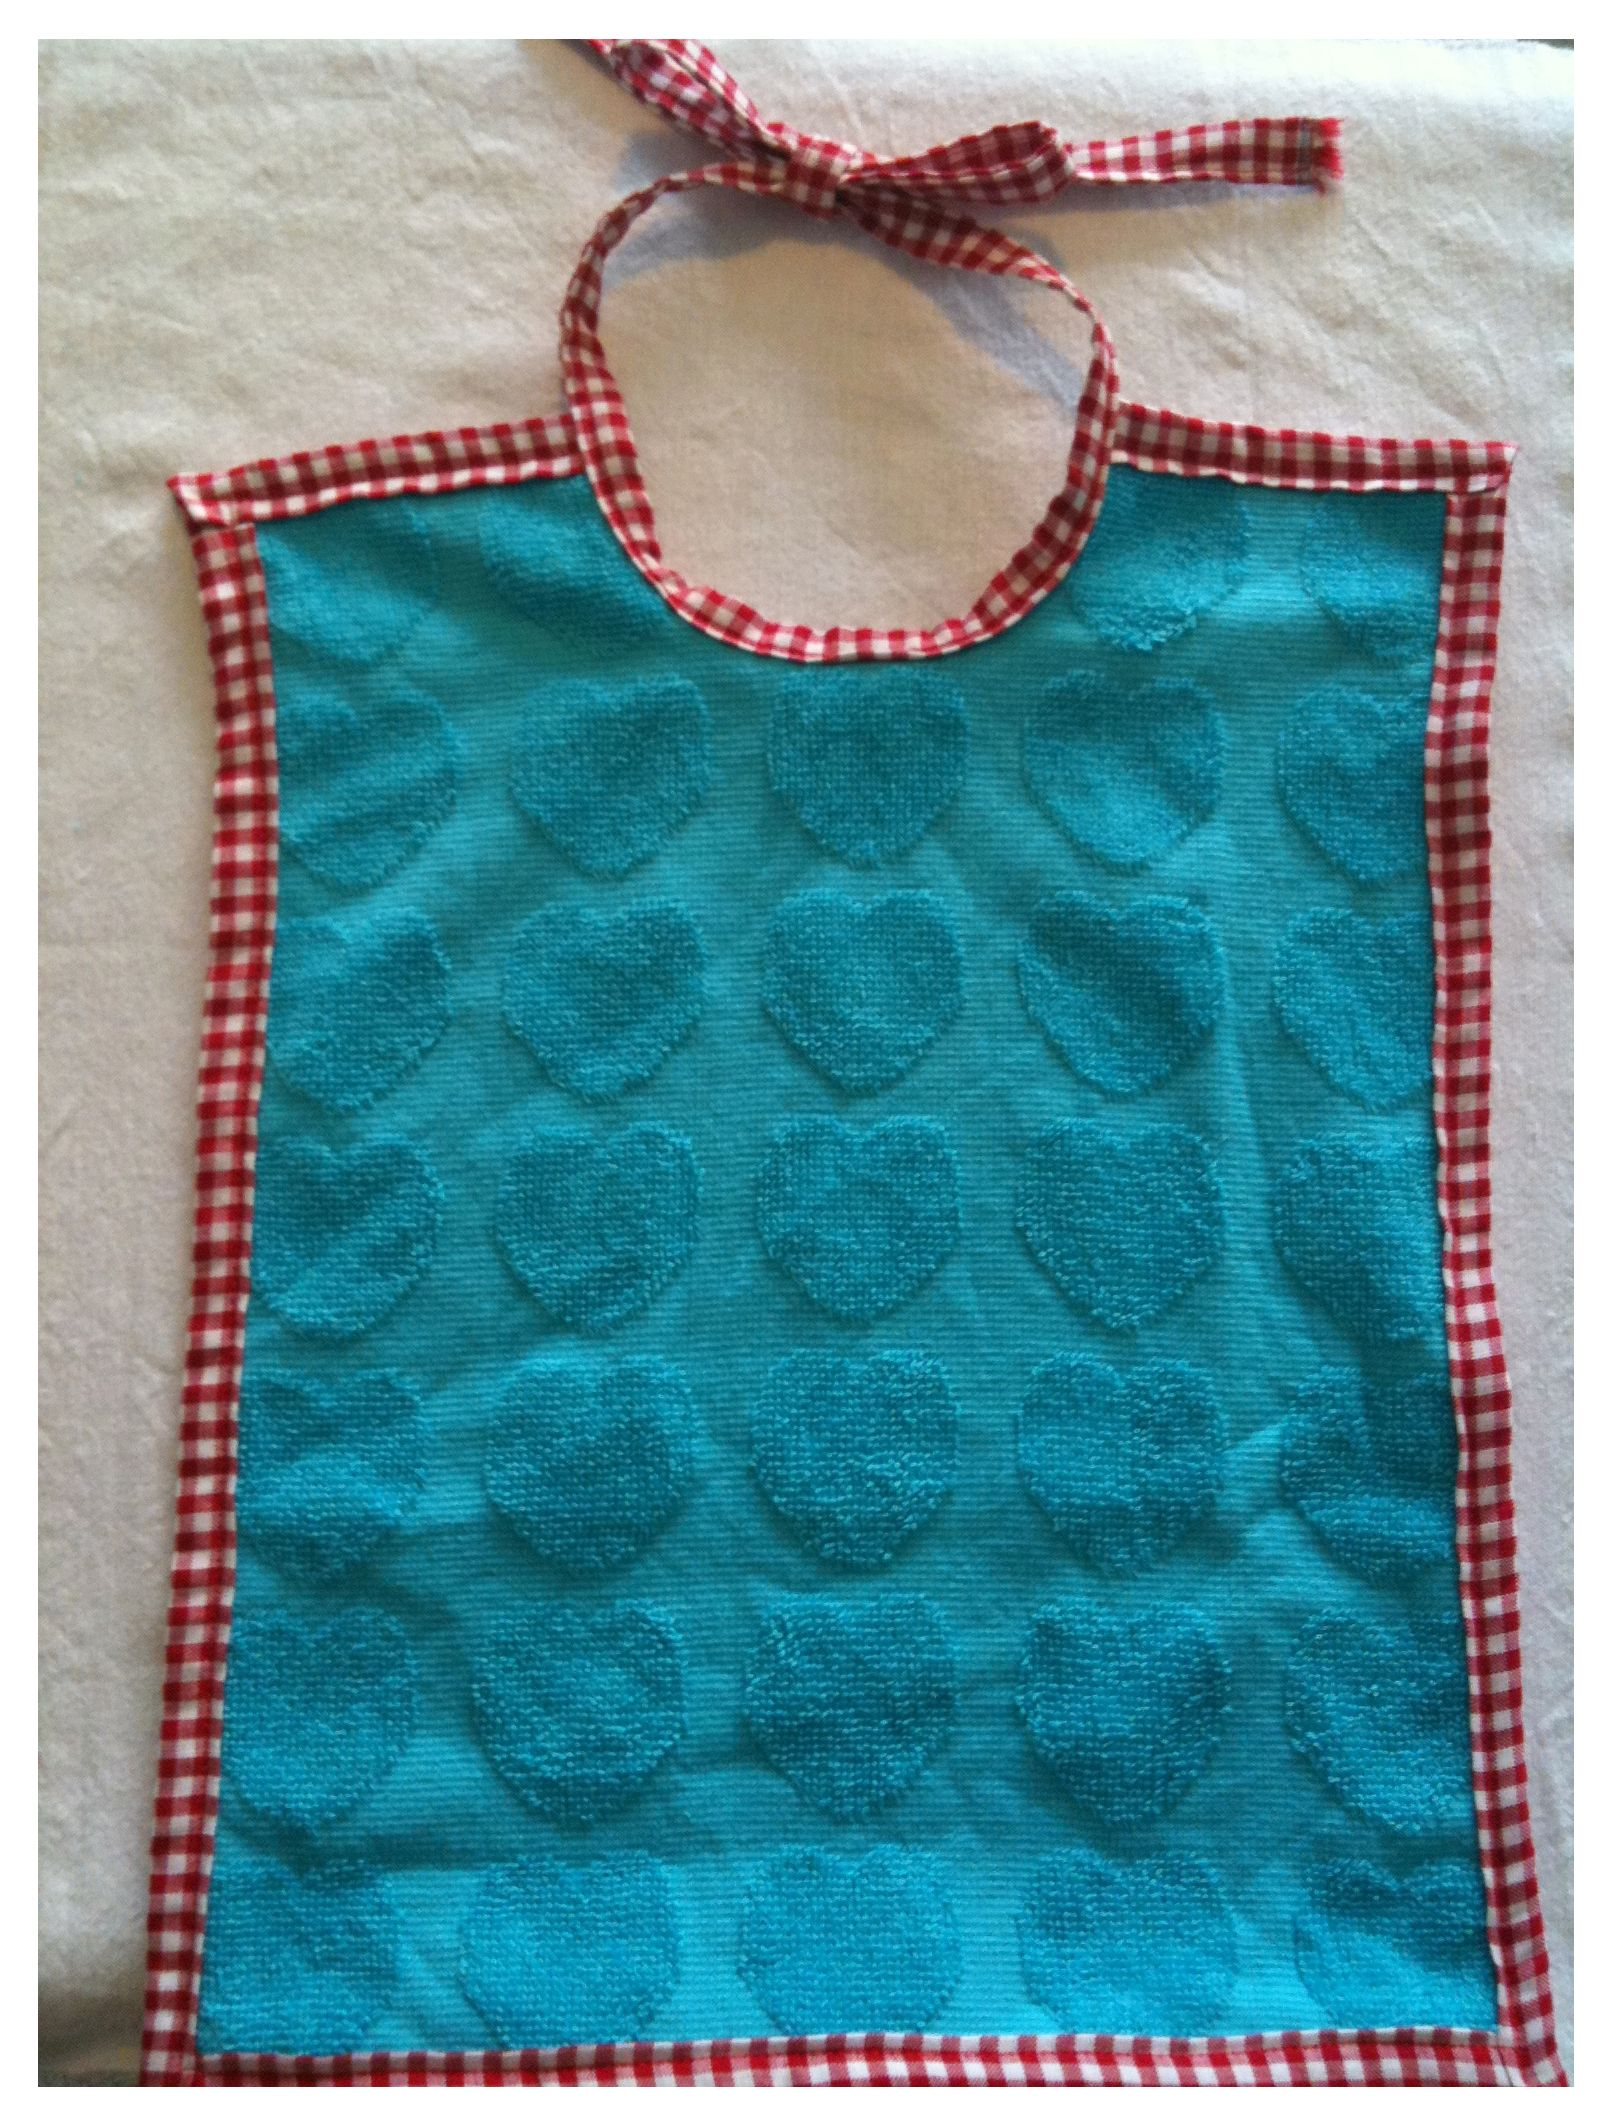 How To Make A Bib Out Of An Old Kitchen Towel Terry Cloth